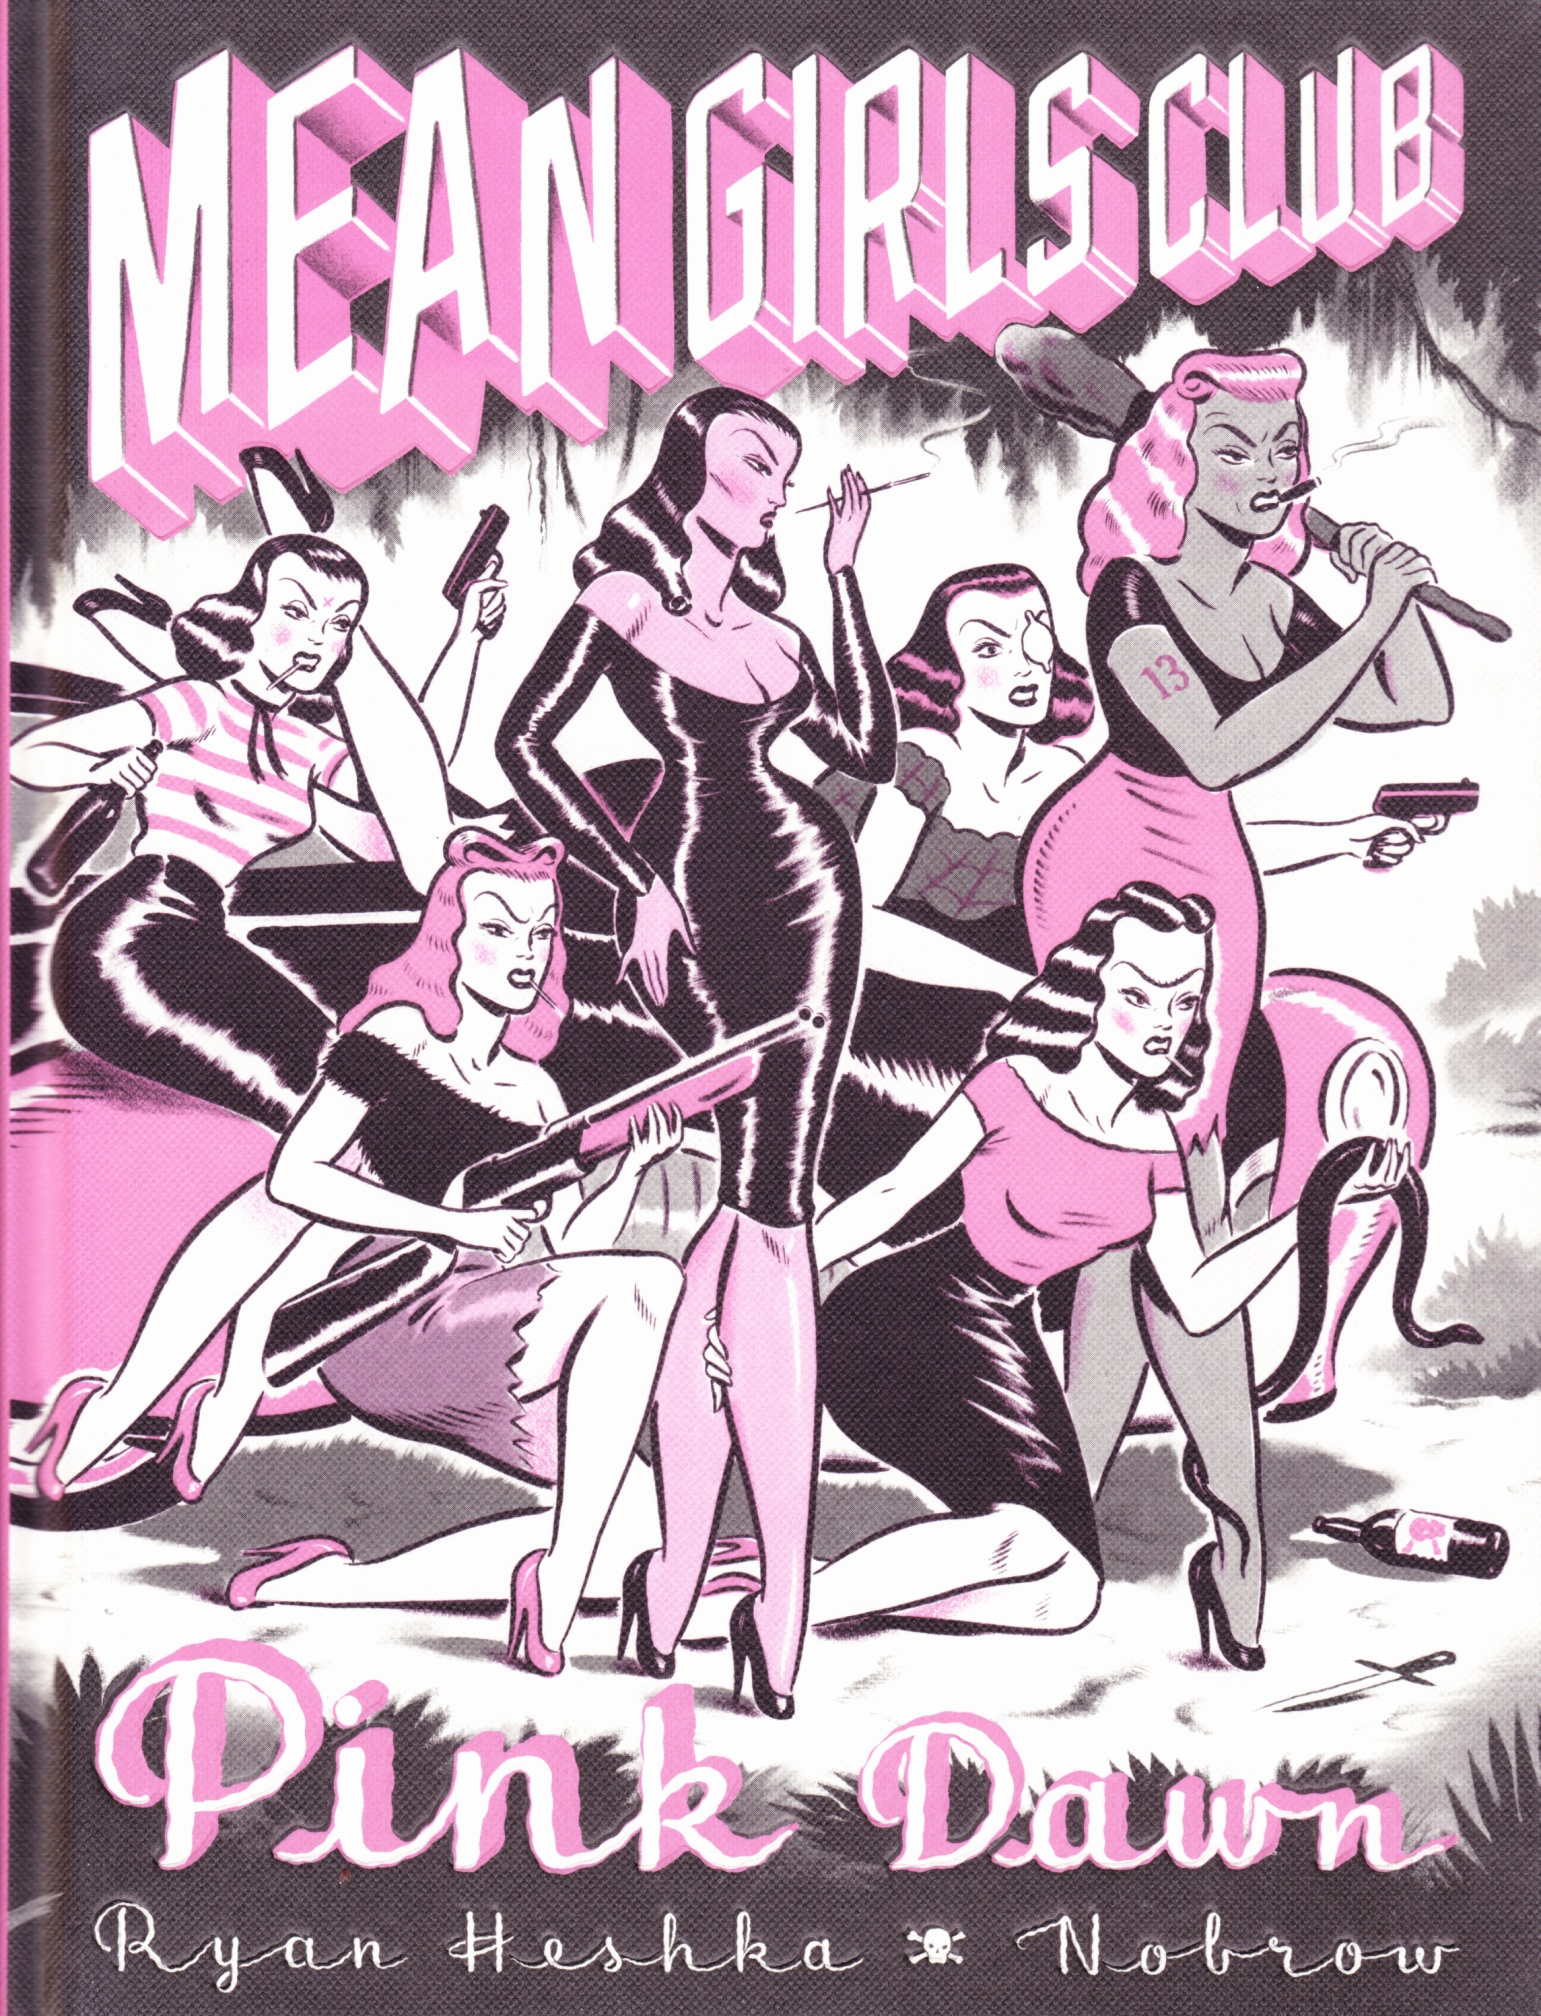 C:\Users\Robert\Documents\CARTOONING ILLUSTRATION ANIMATION\IMAGE BY CARTOONIST\H\HESHKA Ryan, Mean Girls Club, Pink Dawn 2018, fc.jpg